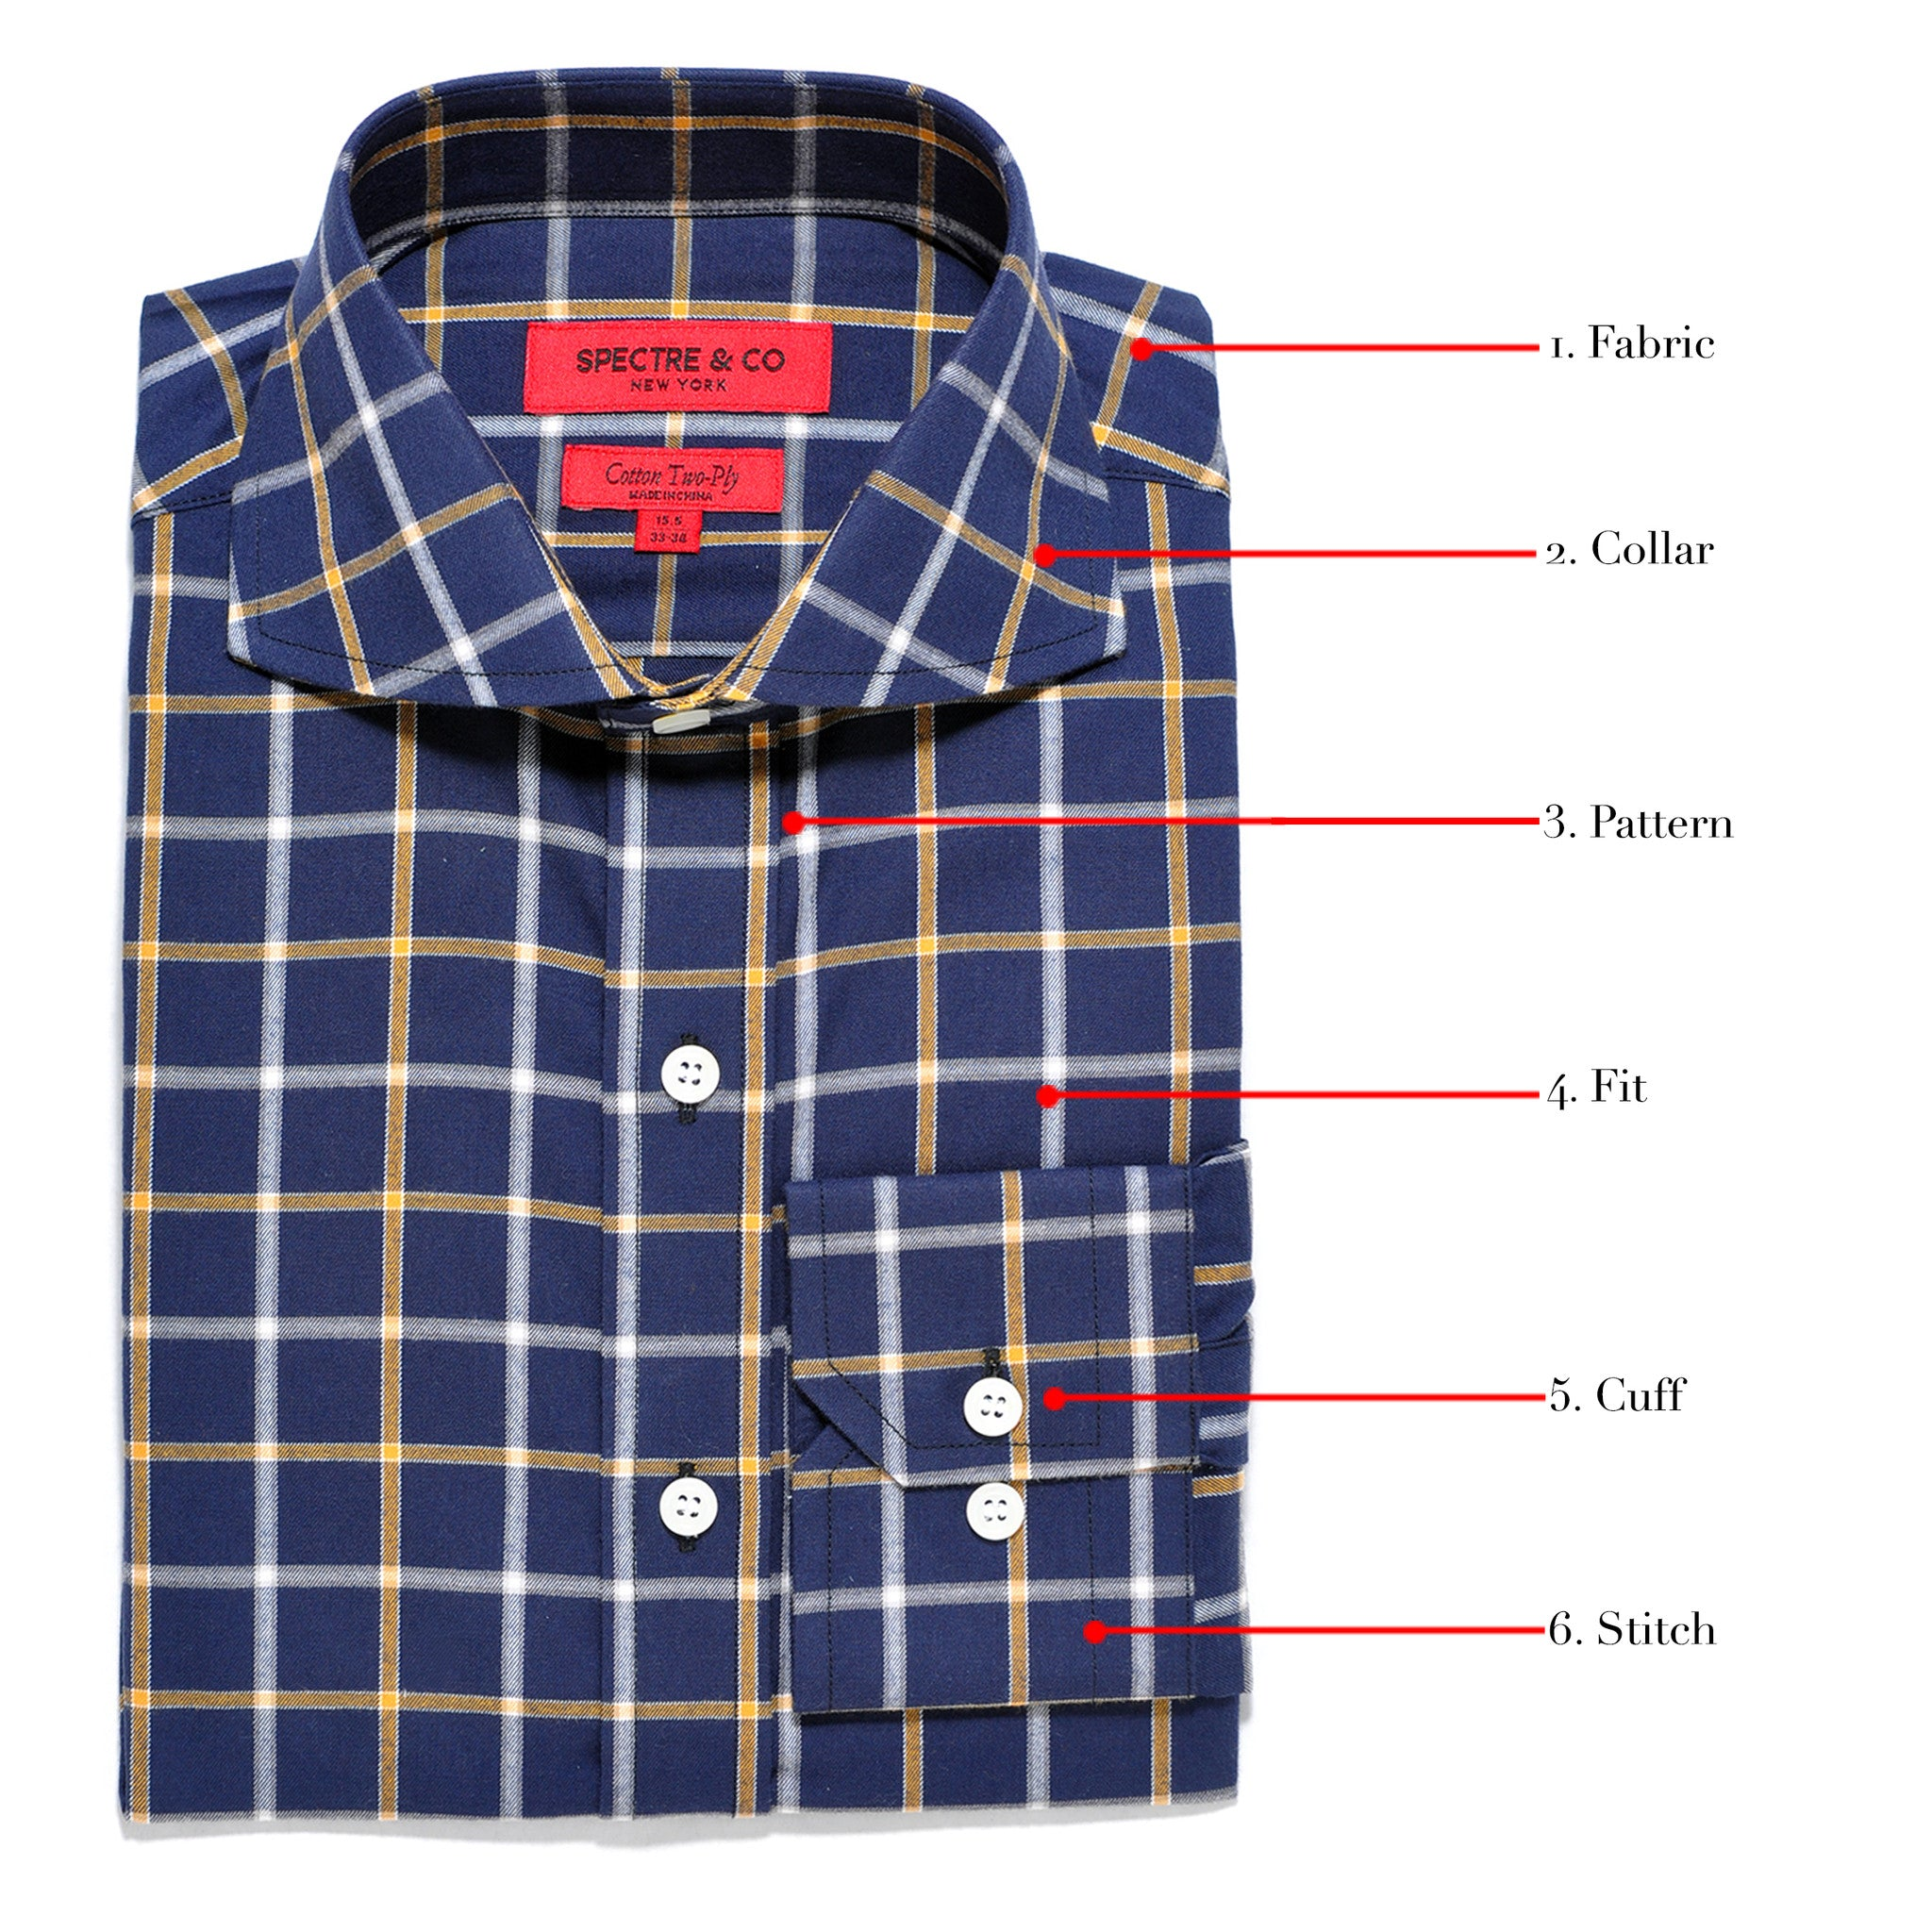 Shirt design new look - Fabric Every Fabric For Every Shirt Is Hand Chosen By Our Design Team We Procure Our Fabrics From All Over The World From Italian Broadcloths To Japanese